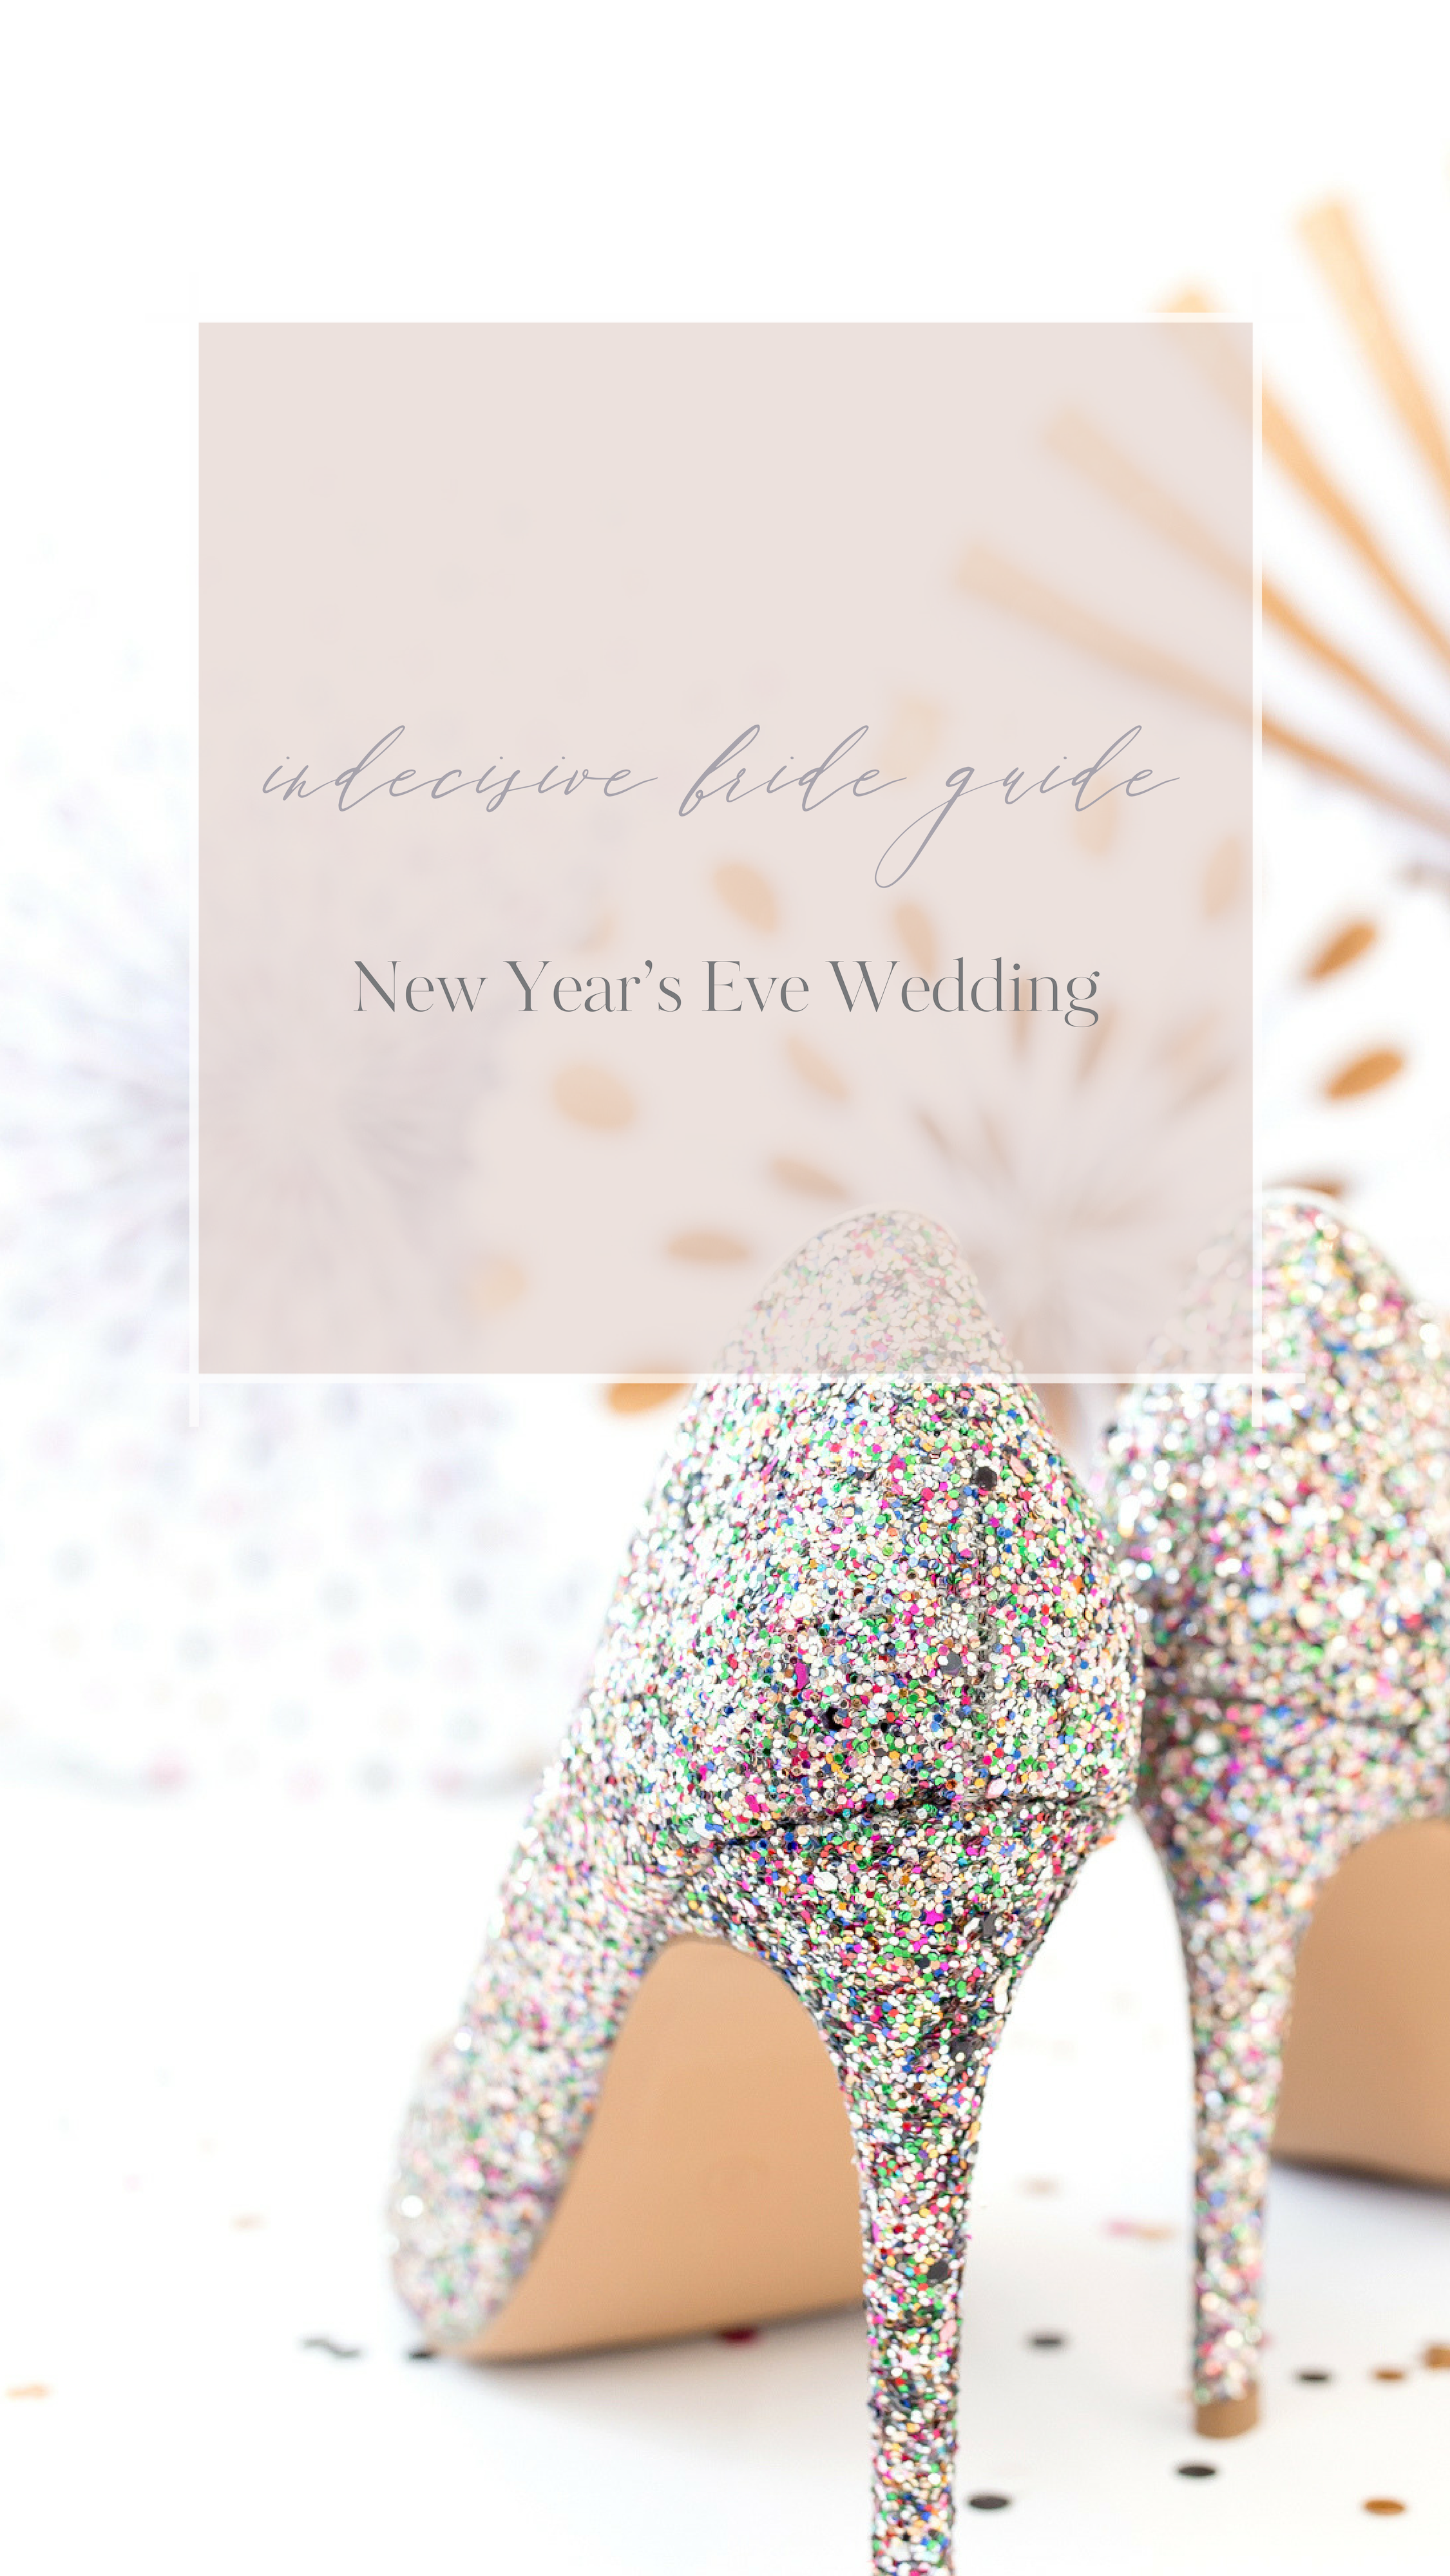 IBG New Year's Eve Wedding.png